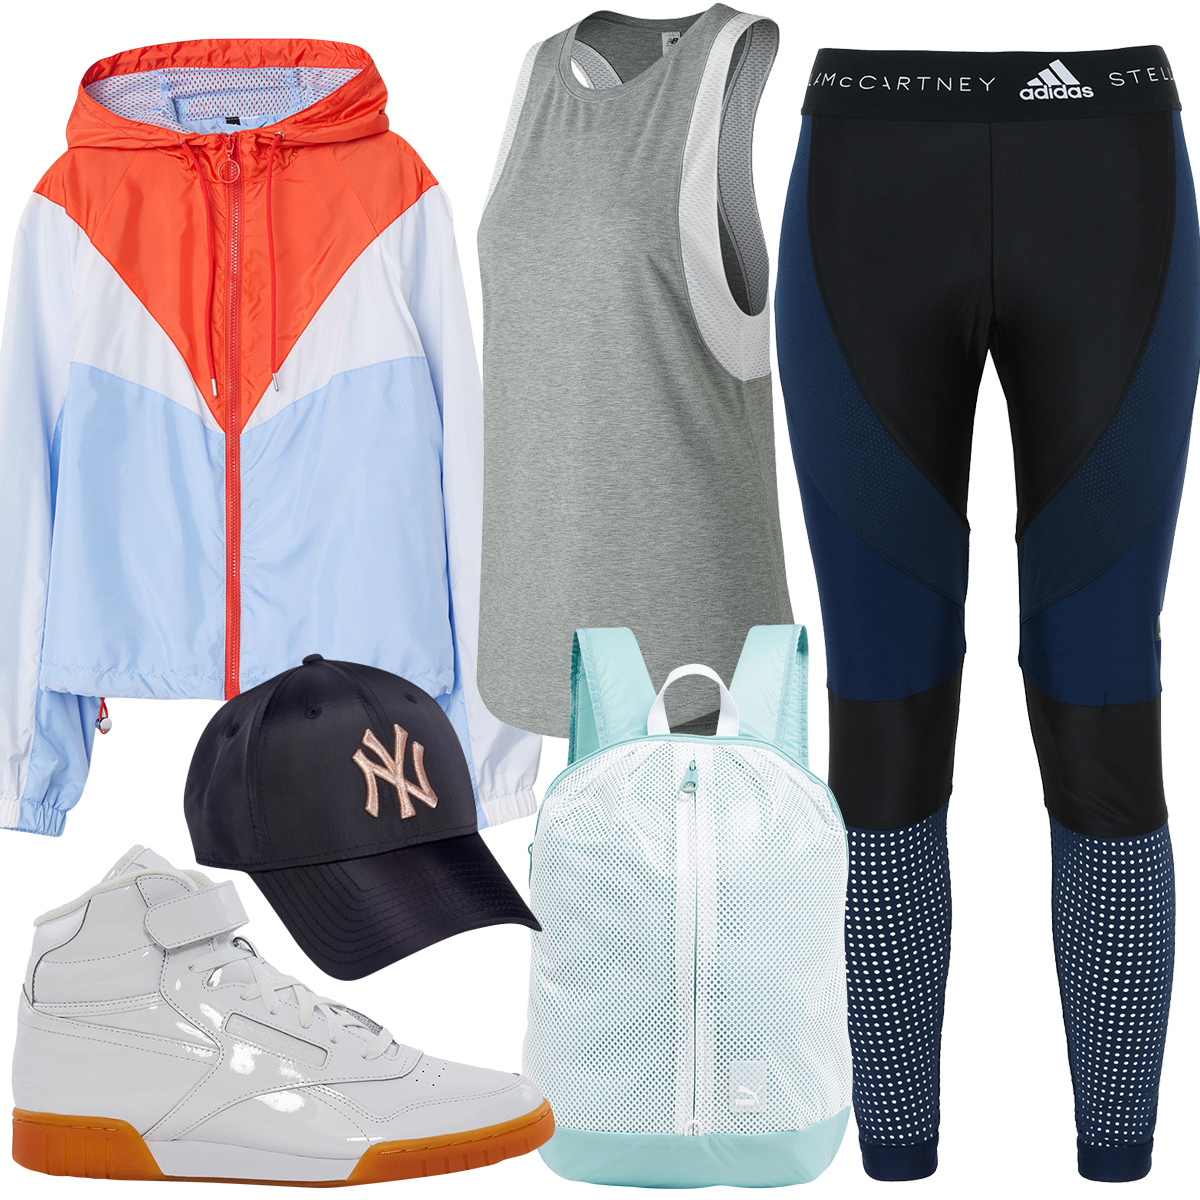 For an Athletic Look